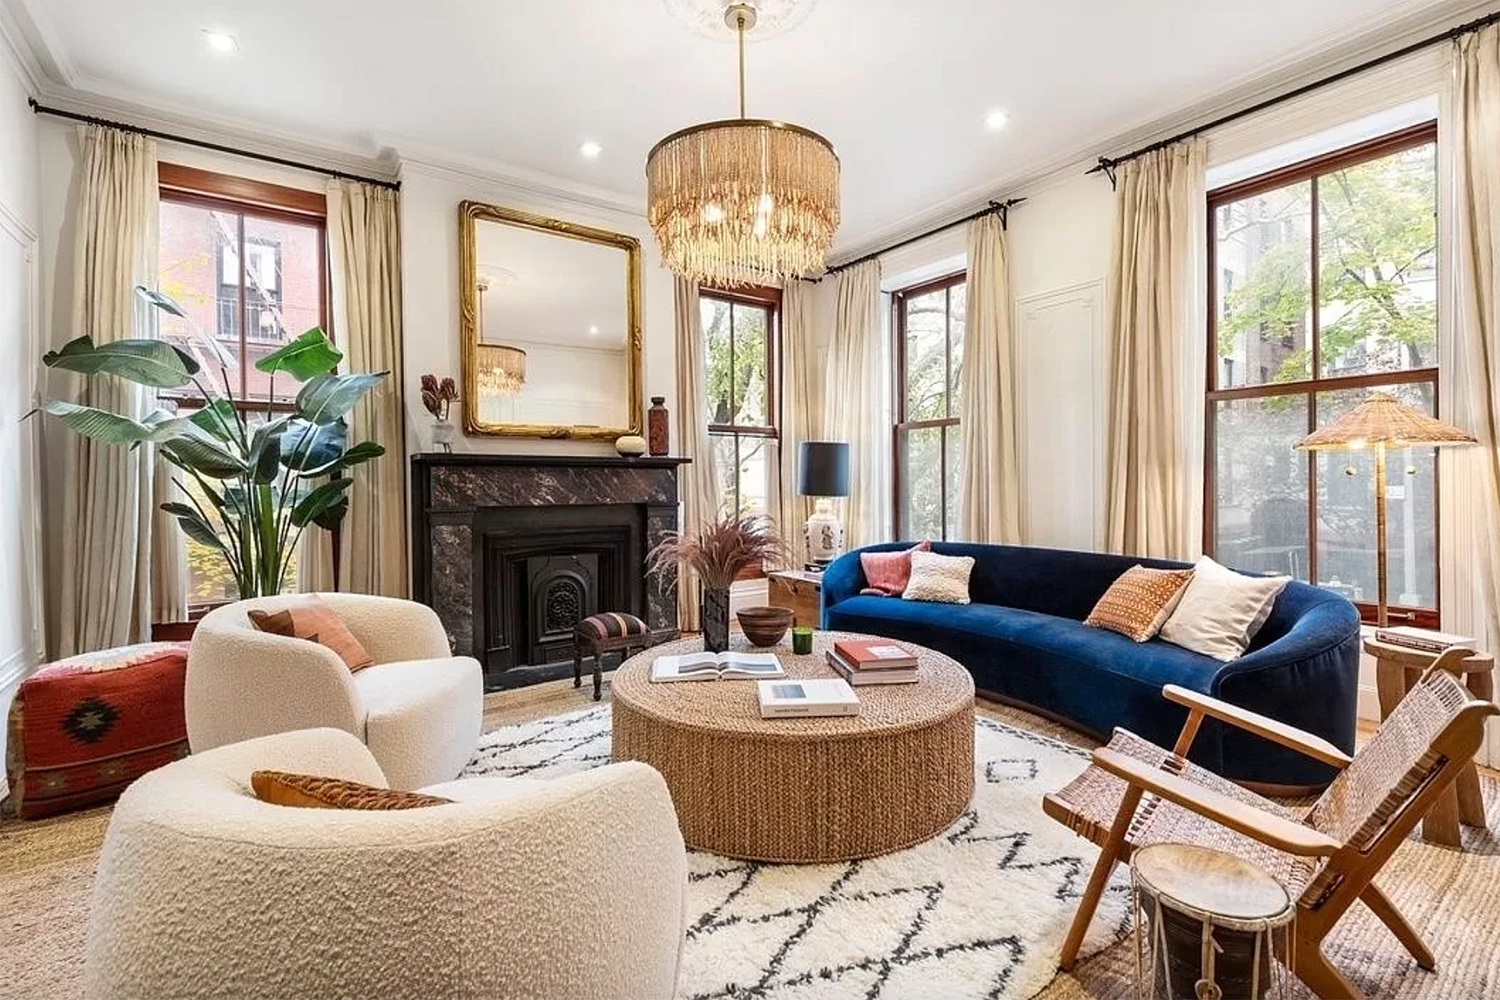 The Best On-the-Market NYC Homes With Hot Tubs and Fireplaces